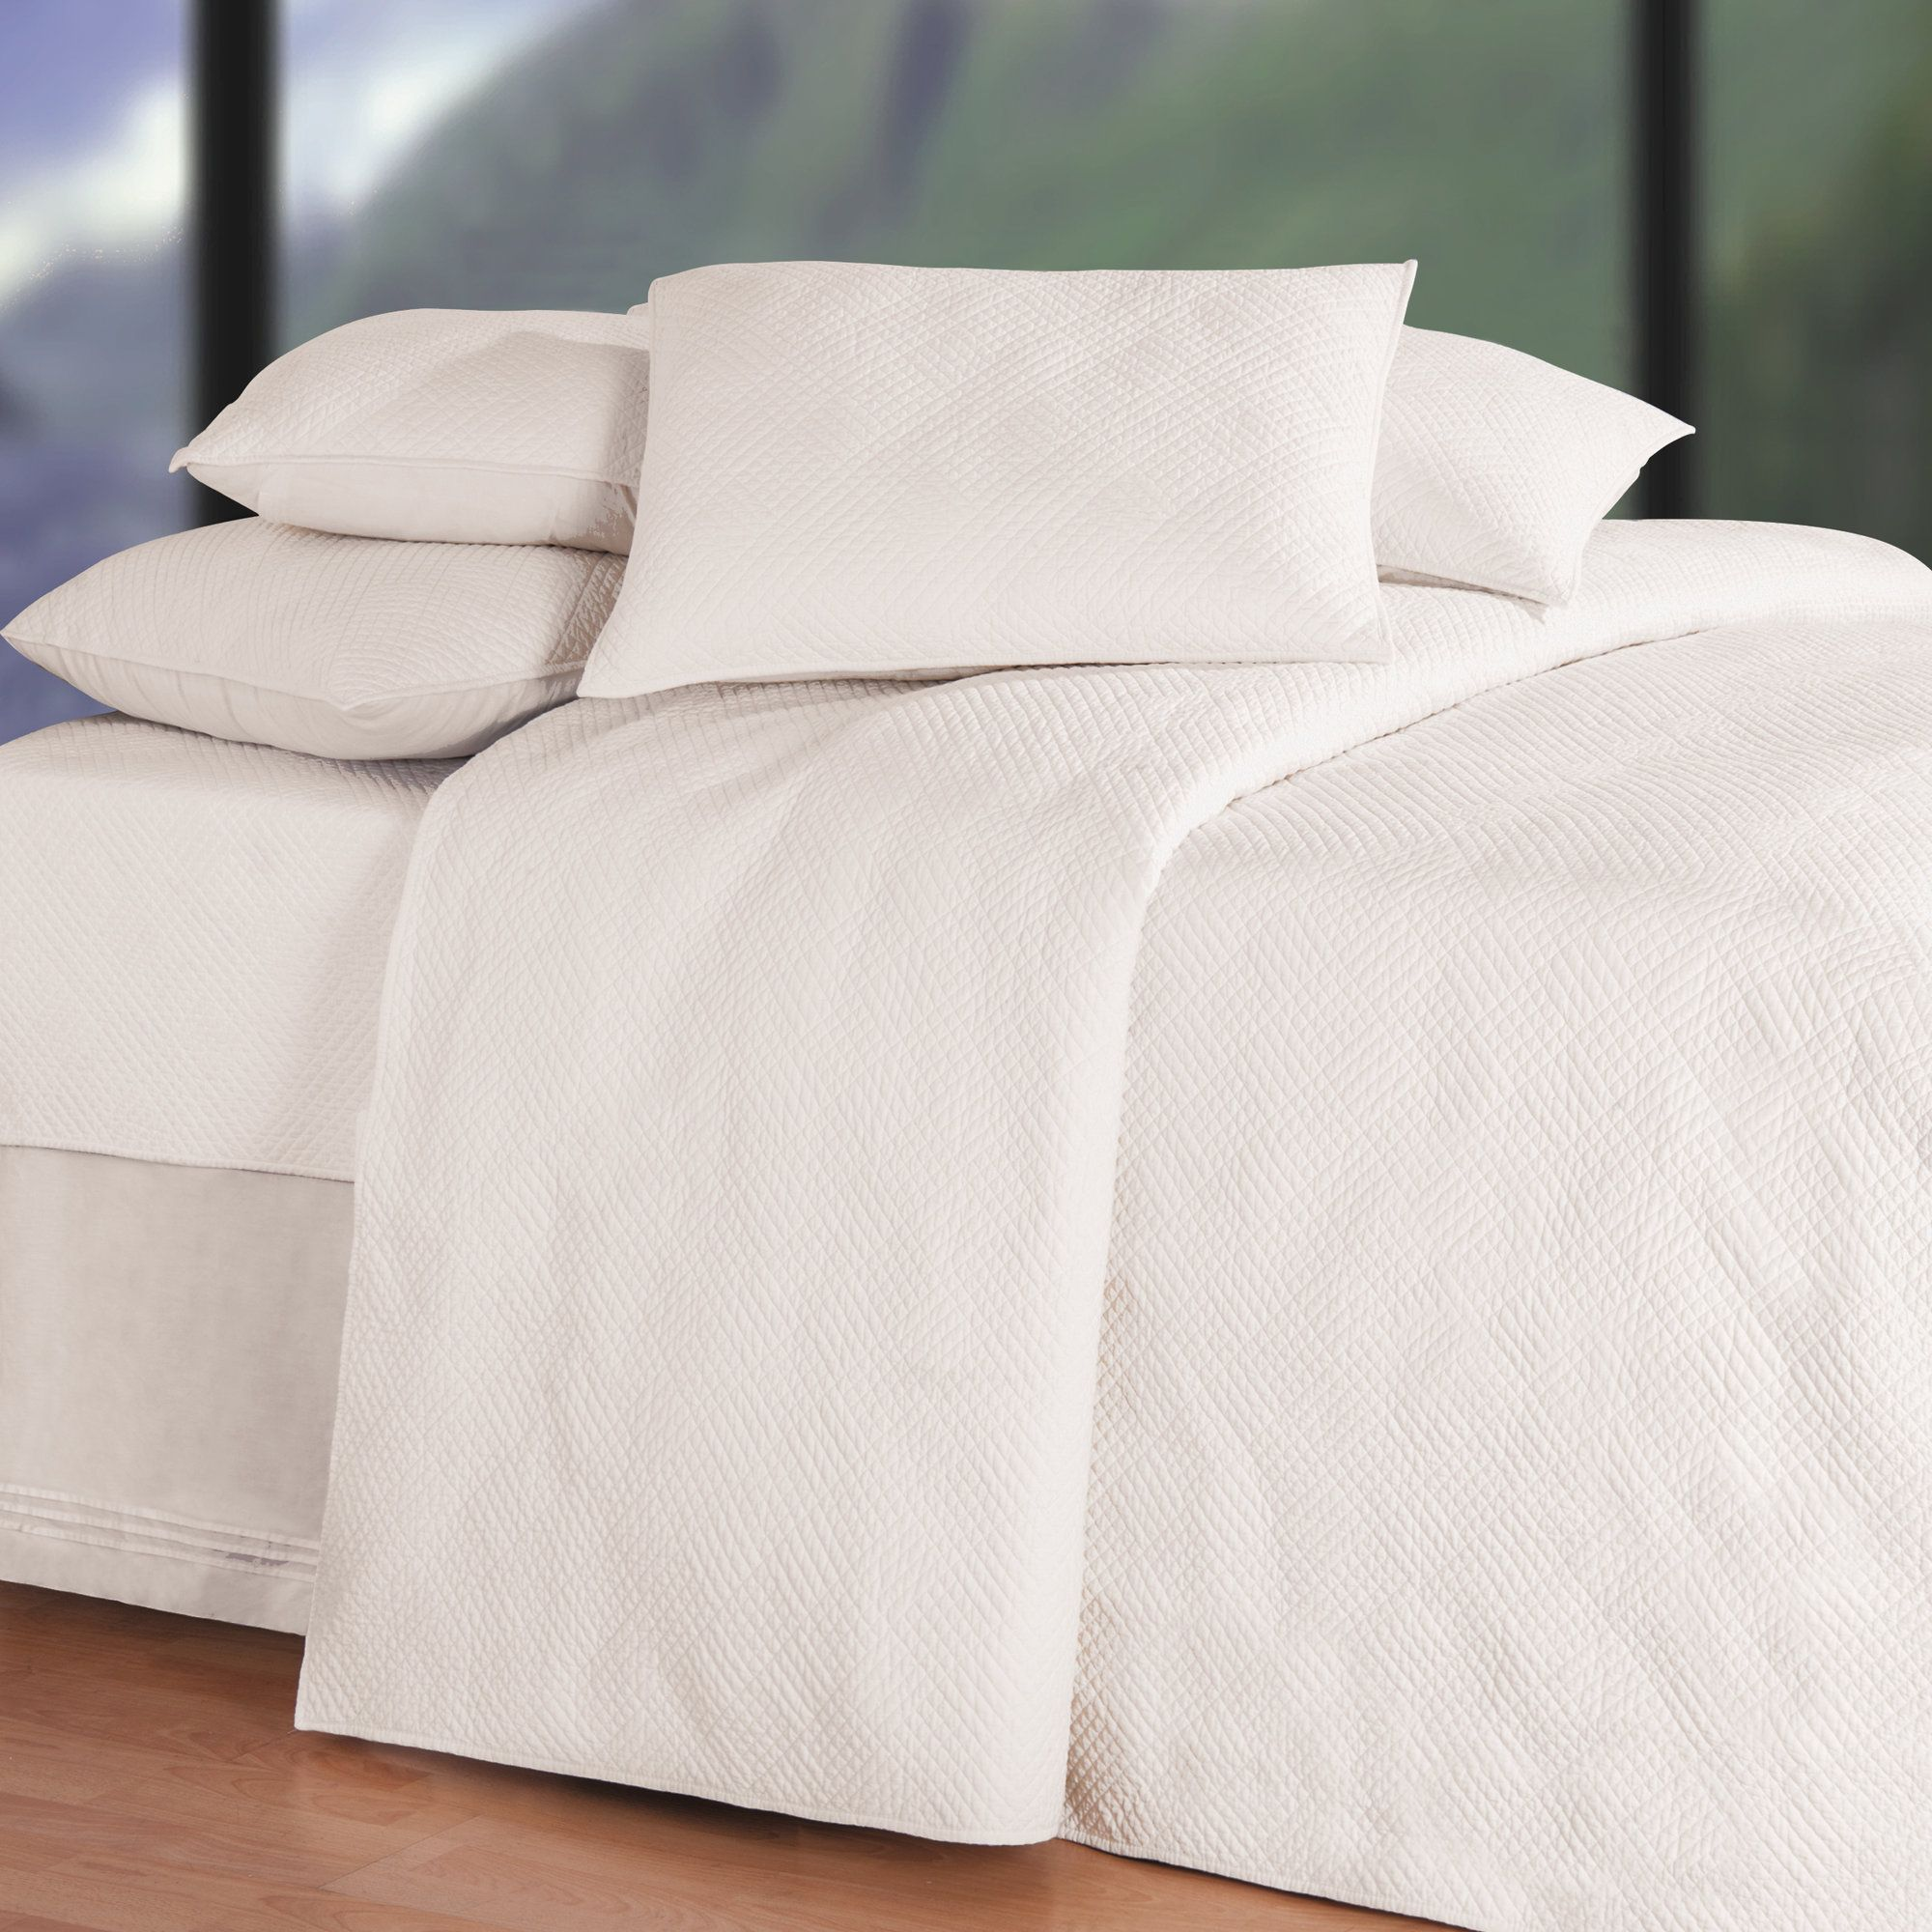 Ronnie Soft Matelasse Quilt White Quilt Bedding Most Comfortable Sheets Online Bedding Stores